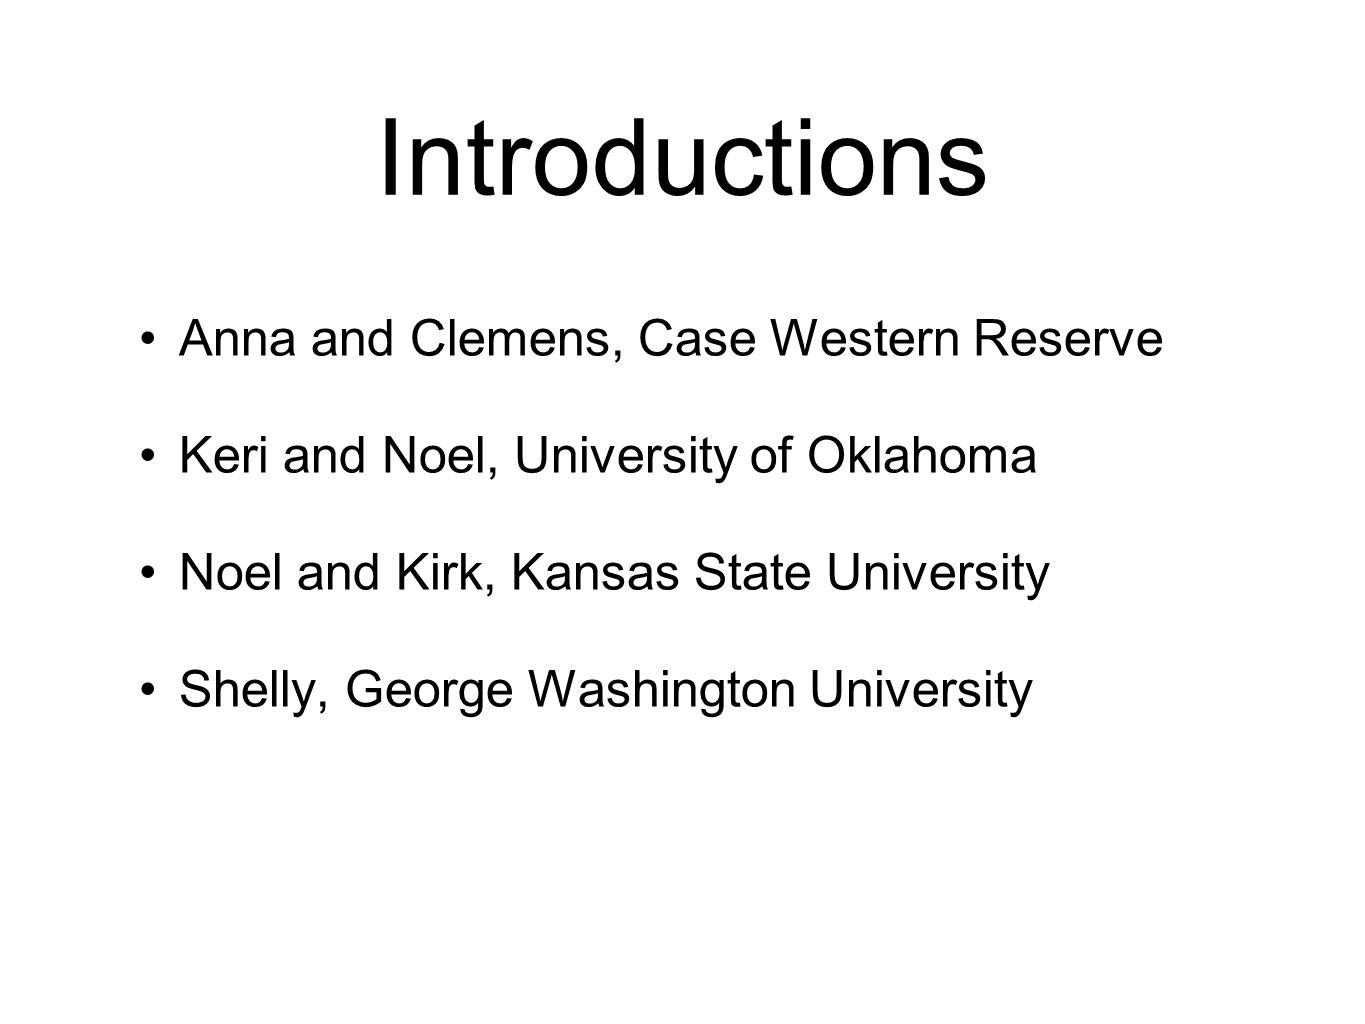 Introductions Anna and Clemens, Case Western Reserve Keri and Noel, University of Oklahoma Noel and Kirk, Kansas State University Shelly, George Washington University